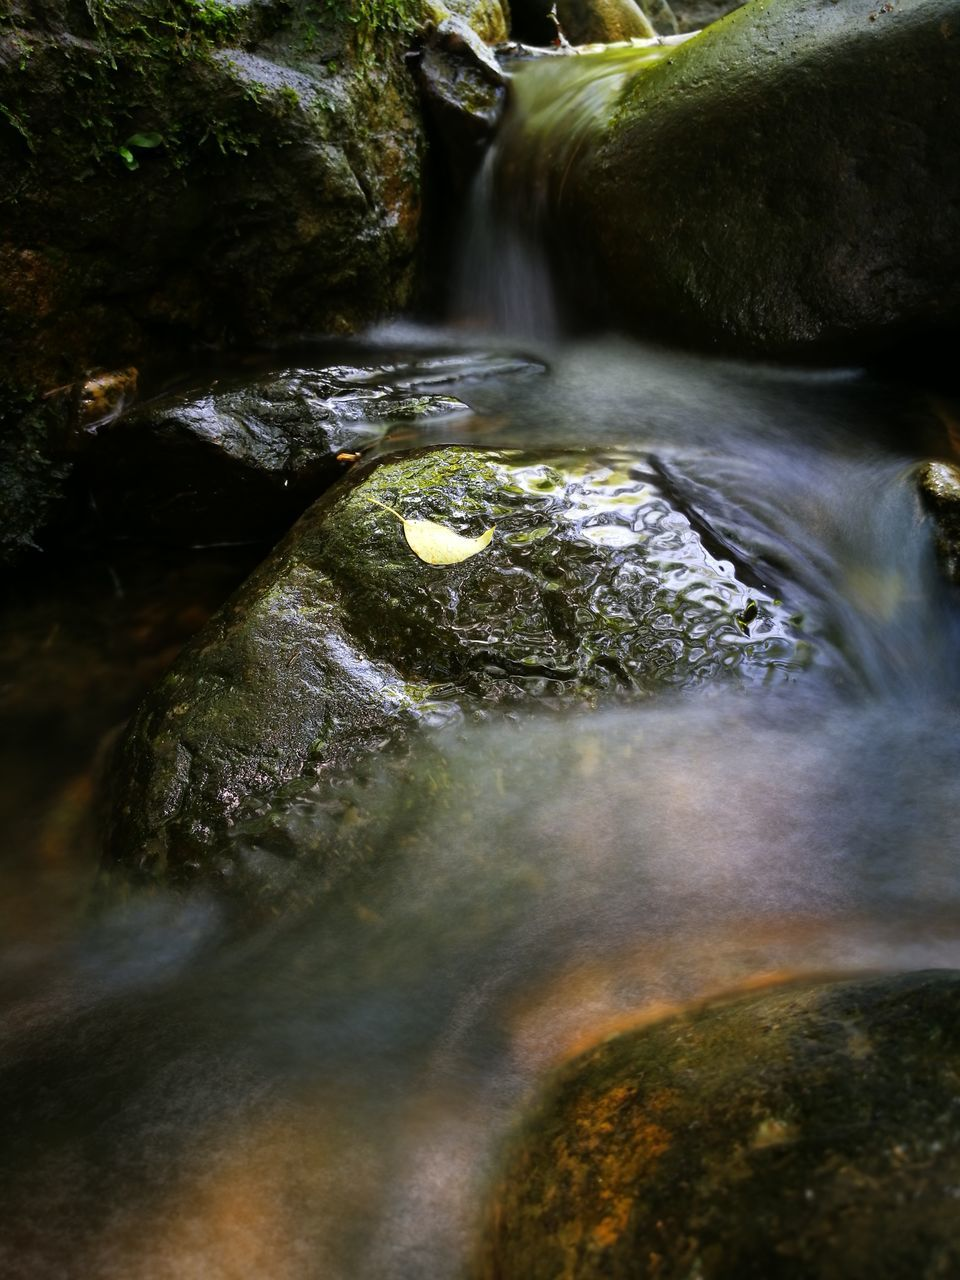 water, motion, waterfall, flowing water, flowing, rock - object, long exposure, blurred motion, stream, nature, no people, outdoors, running water, day, high angle view, stream - flowing water, beauty in nature, moss, rapid, scenics, hot spring, close-up